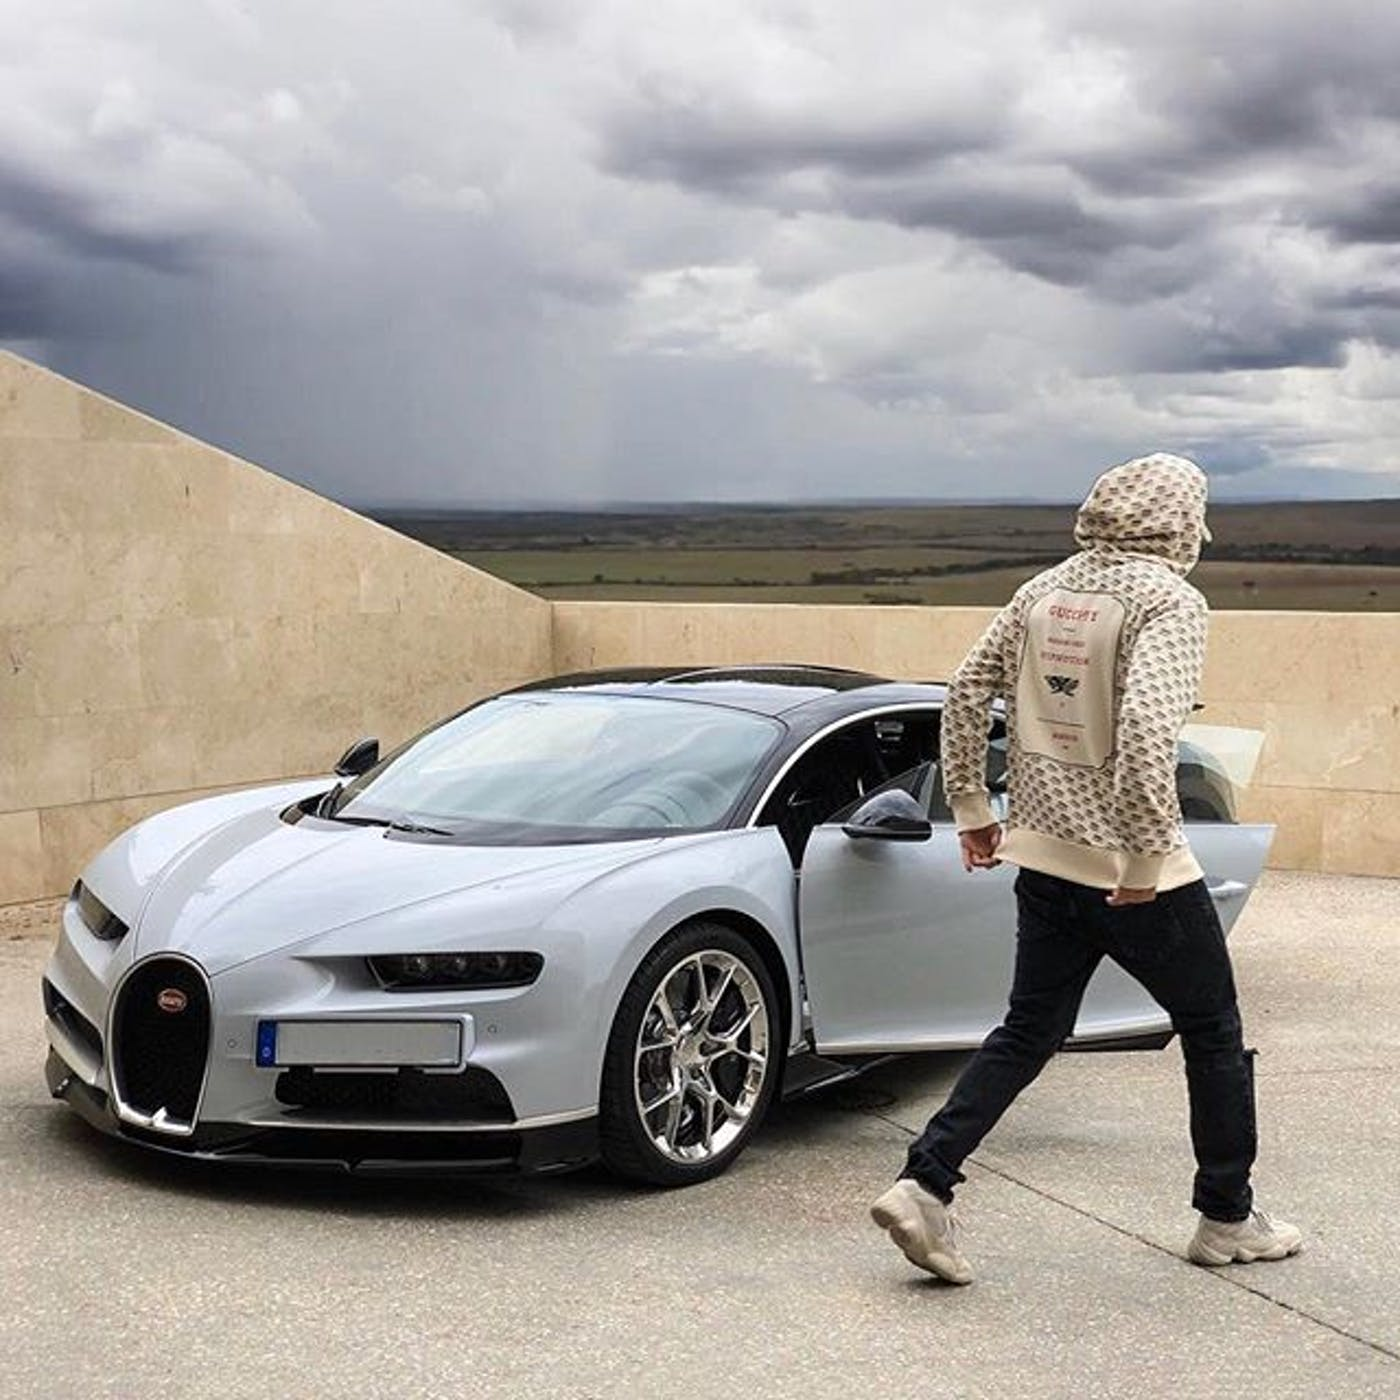 Bugatti Chiron: Karim Benzema's Bugatti Chiron Has This Awesome Spec